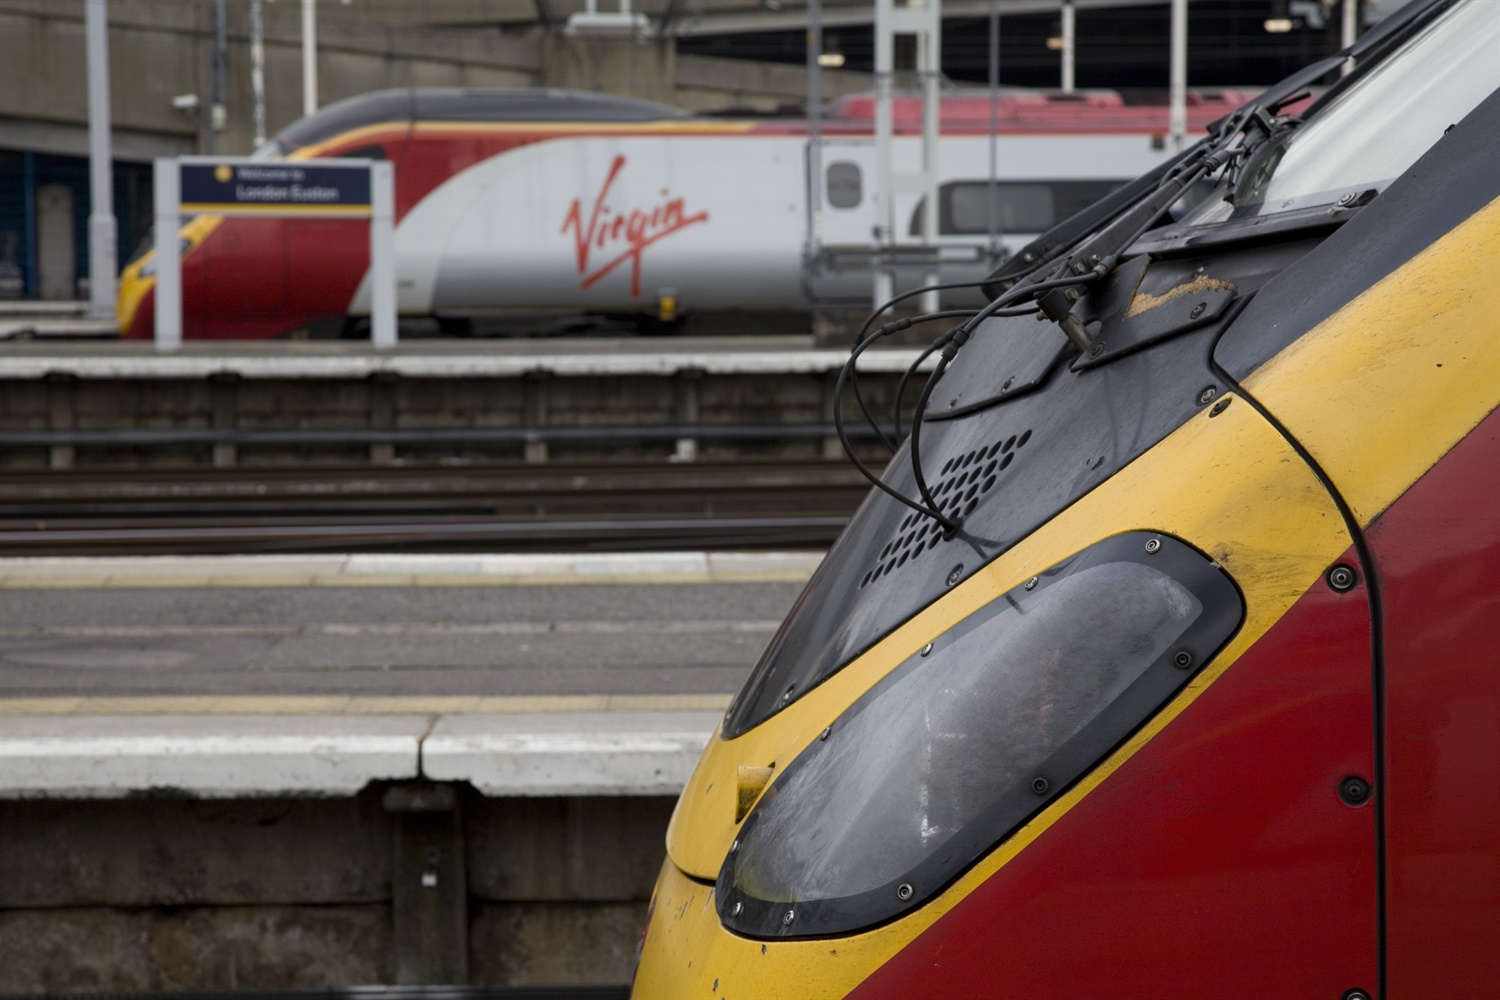 Virgin Trains lead the way with 5G onboard connectivity